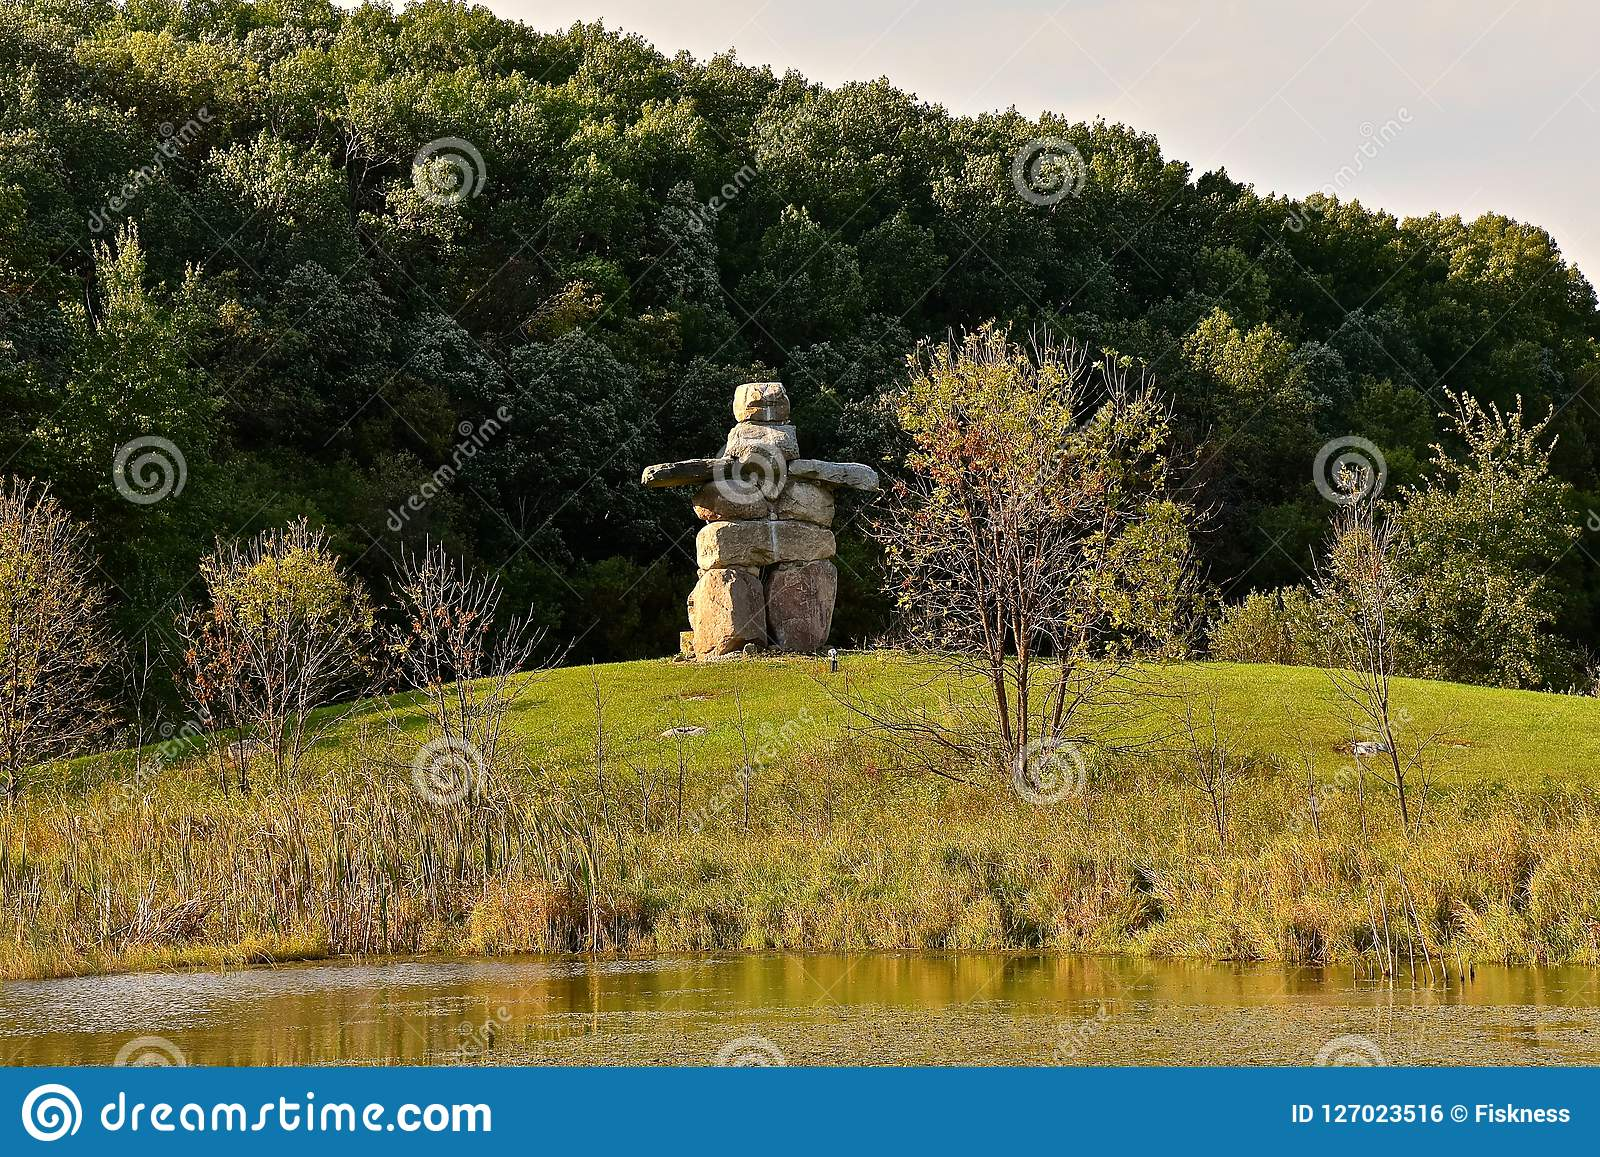 A Inukshuk located along a hill by a body on water and woods